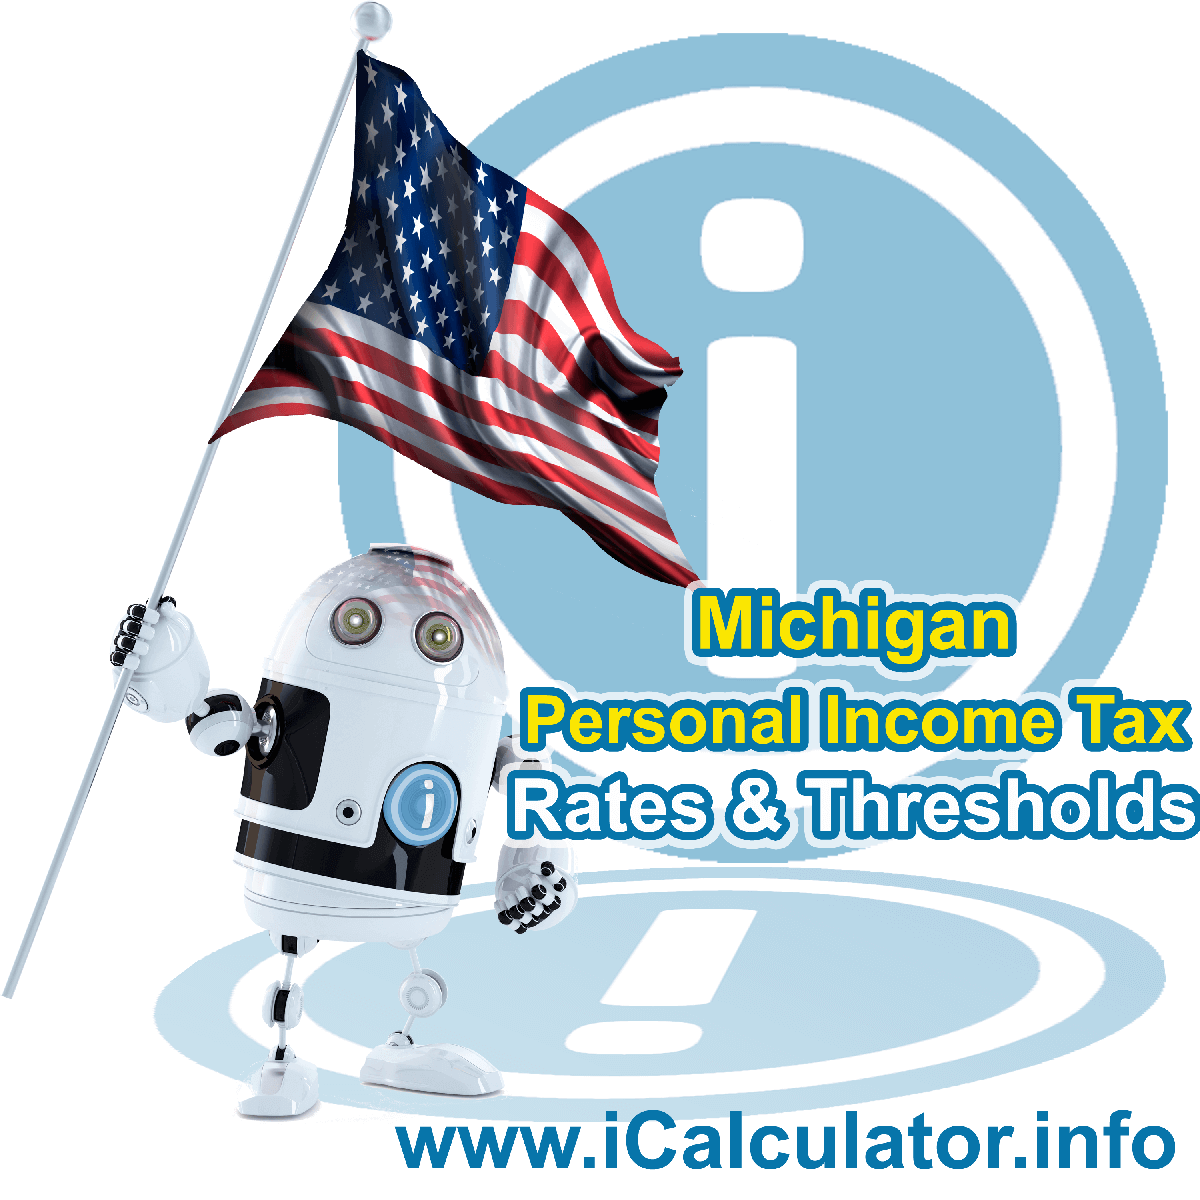 Michigan State Tax Tables 2019. This image displays details of the Michigan State Tax Tables for the 2019 tax return year which is provided in support of the 2019 US Tax Calculator